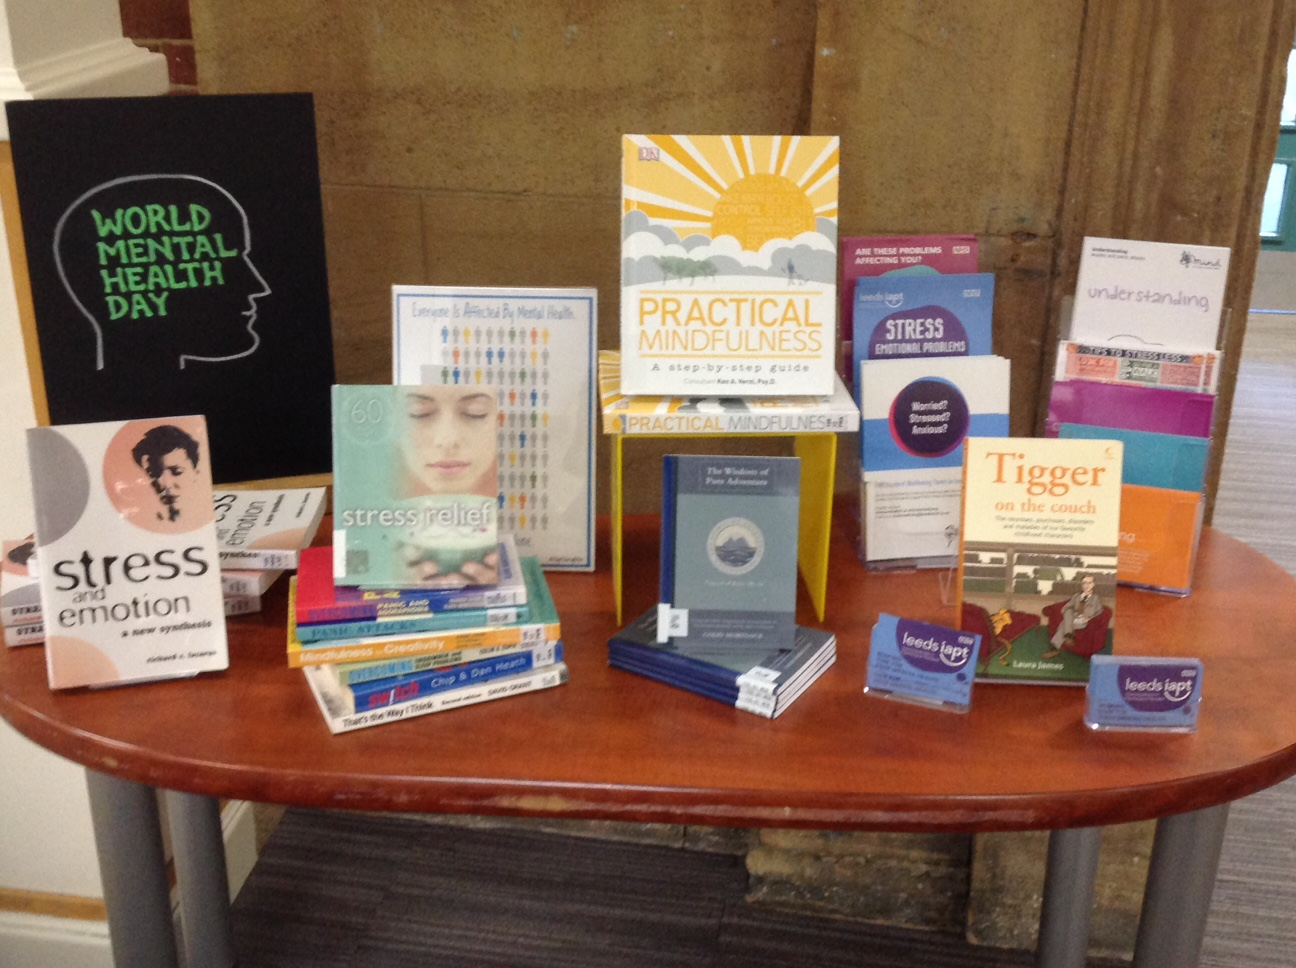 Mental health materials on table